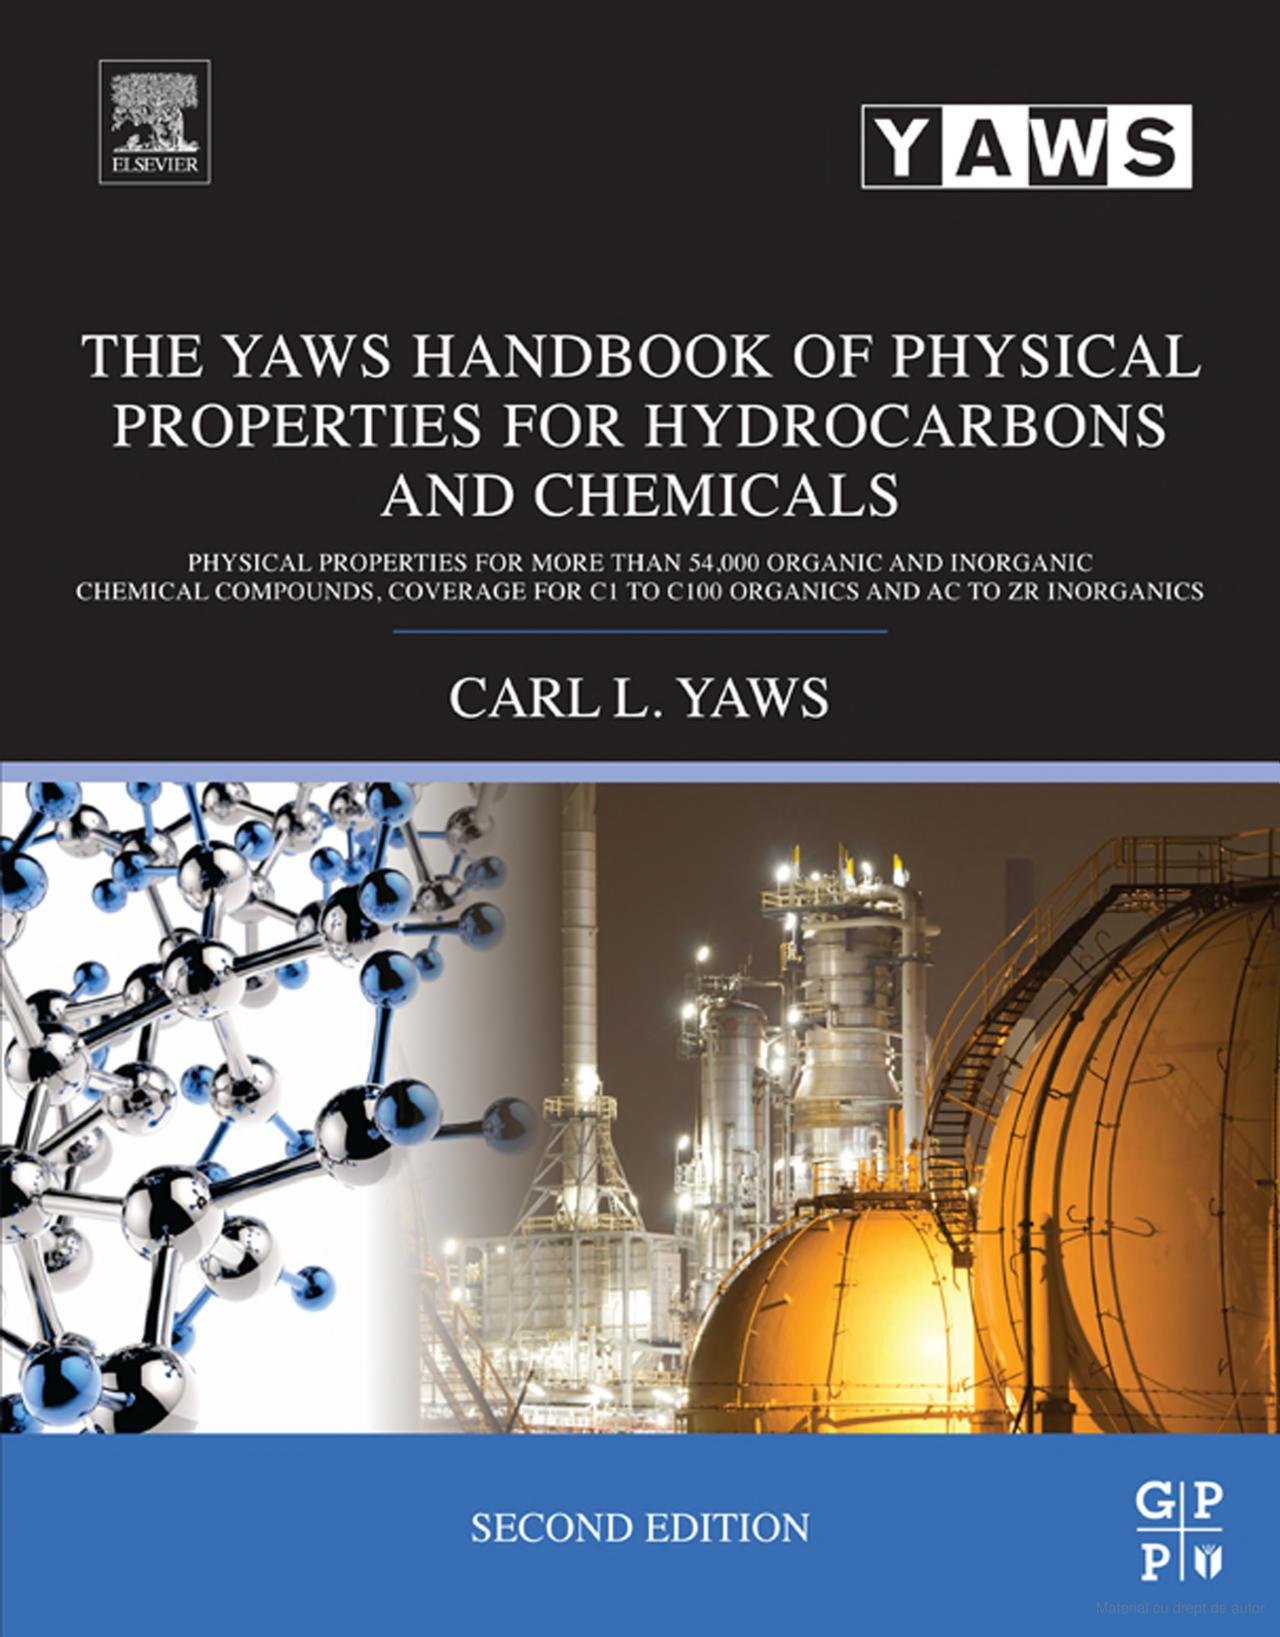 Engineering Library Ebooks  The Yaws Handbook Of Physical Properties For Hydrocarbons And